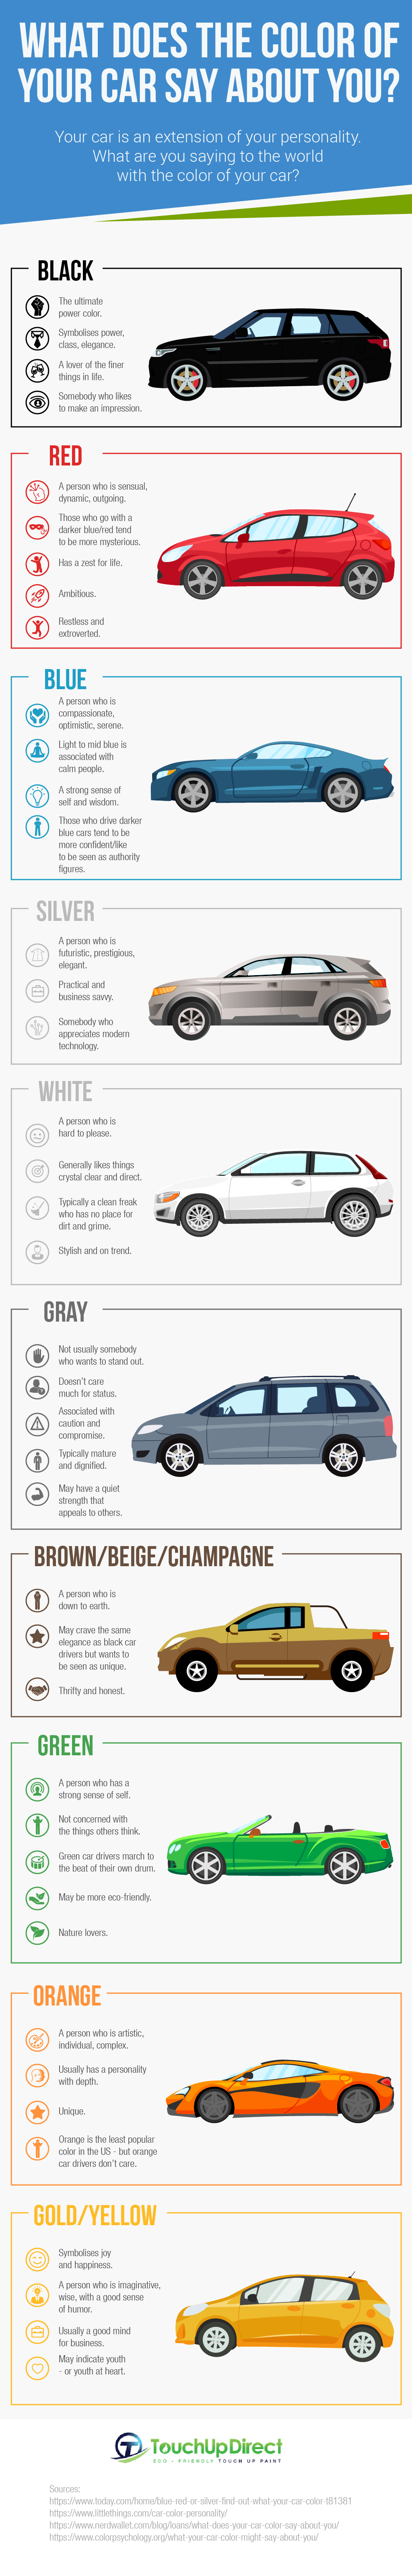 car paint colors personality traits infographic